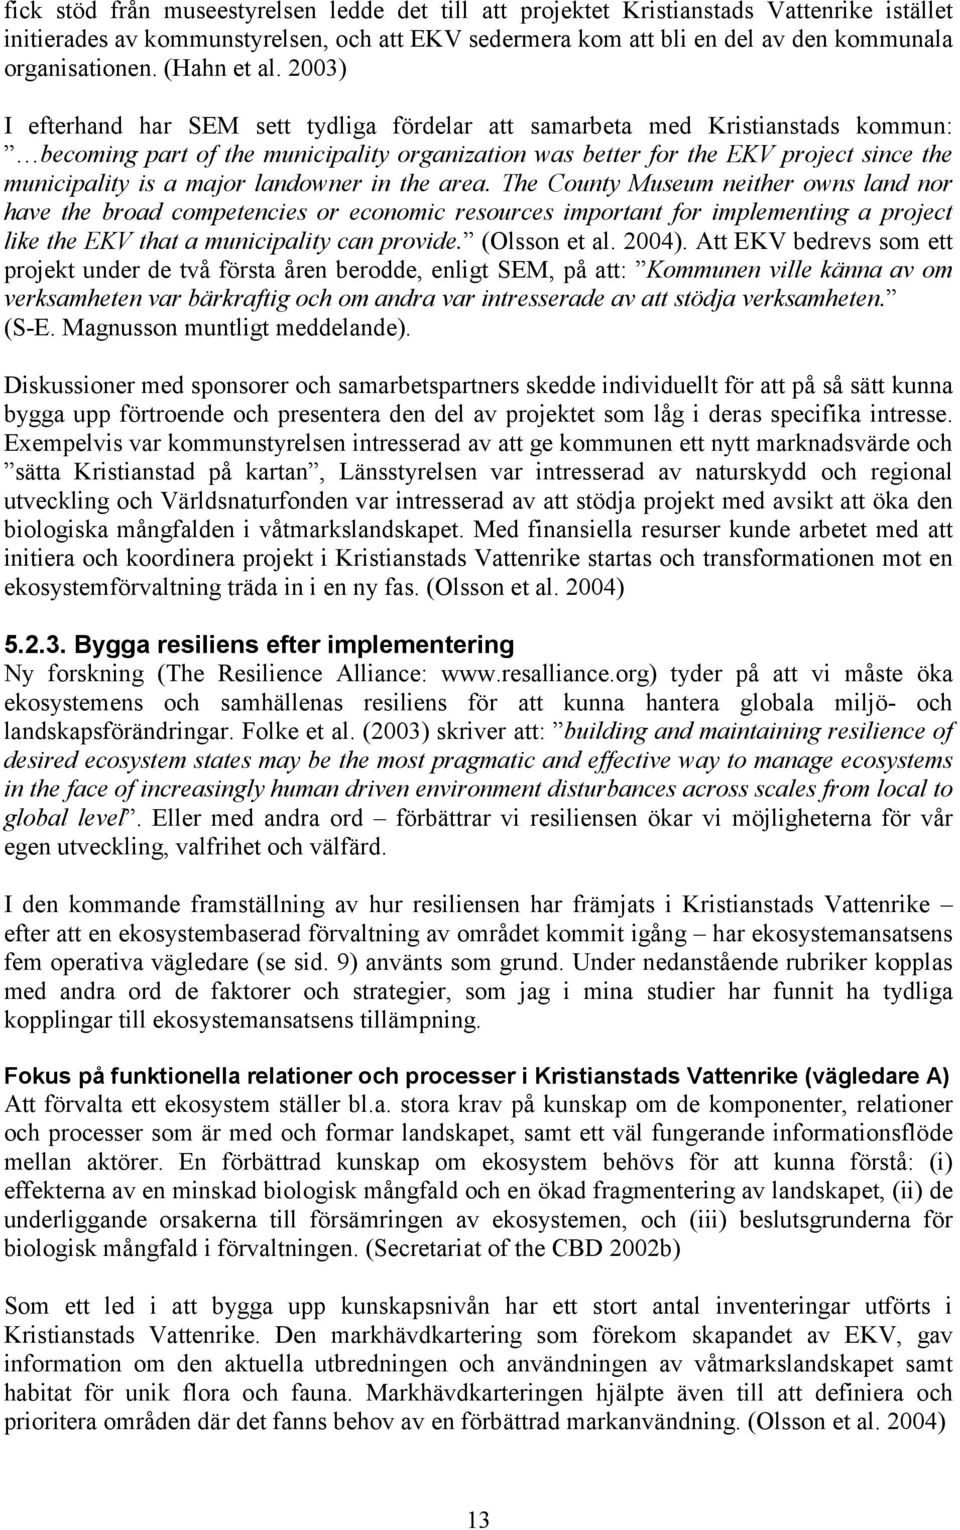 2003) I efterhand har SEM sett tydliga fördelar att samarbeta med Kristianstads kommun: becoming part of the municipality organization was better for the EKV project since the municipality is a major